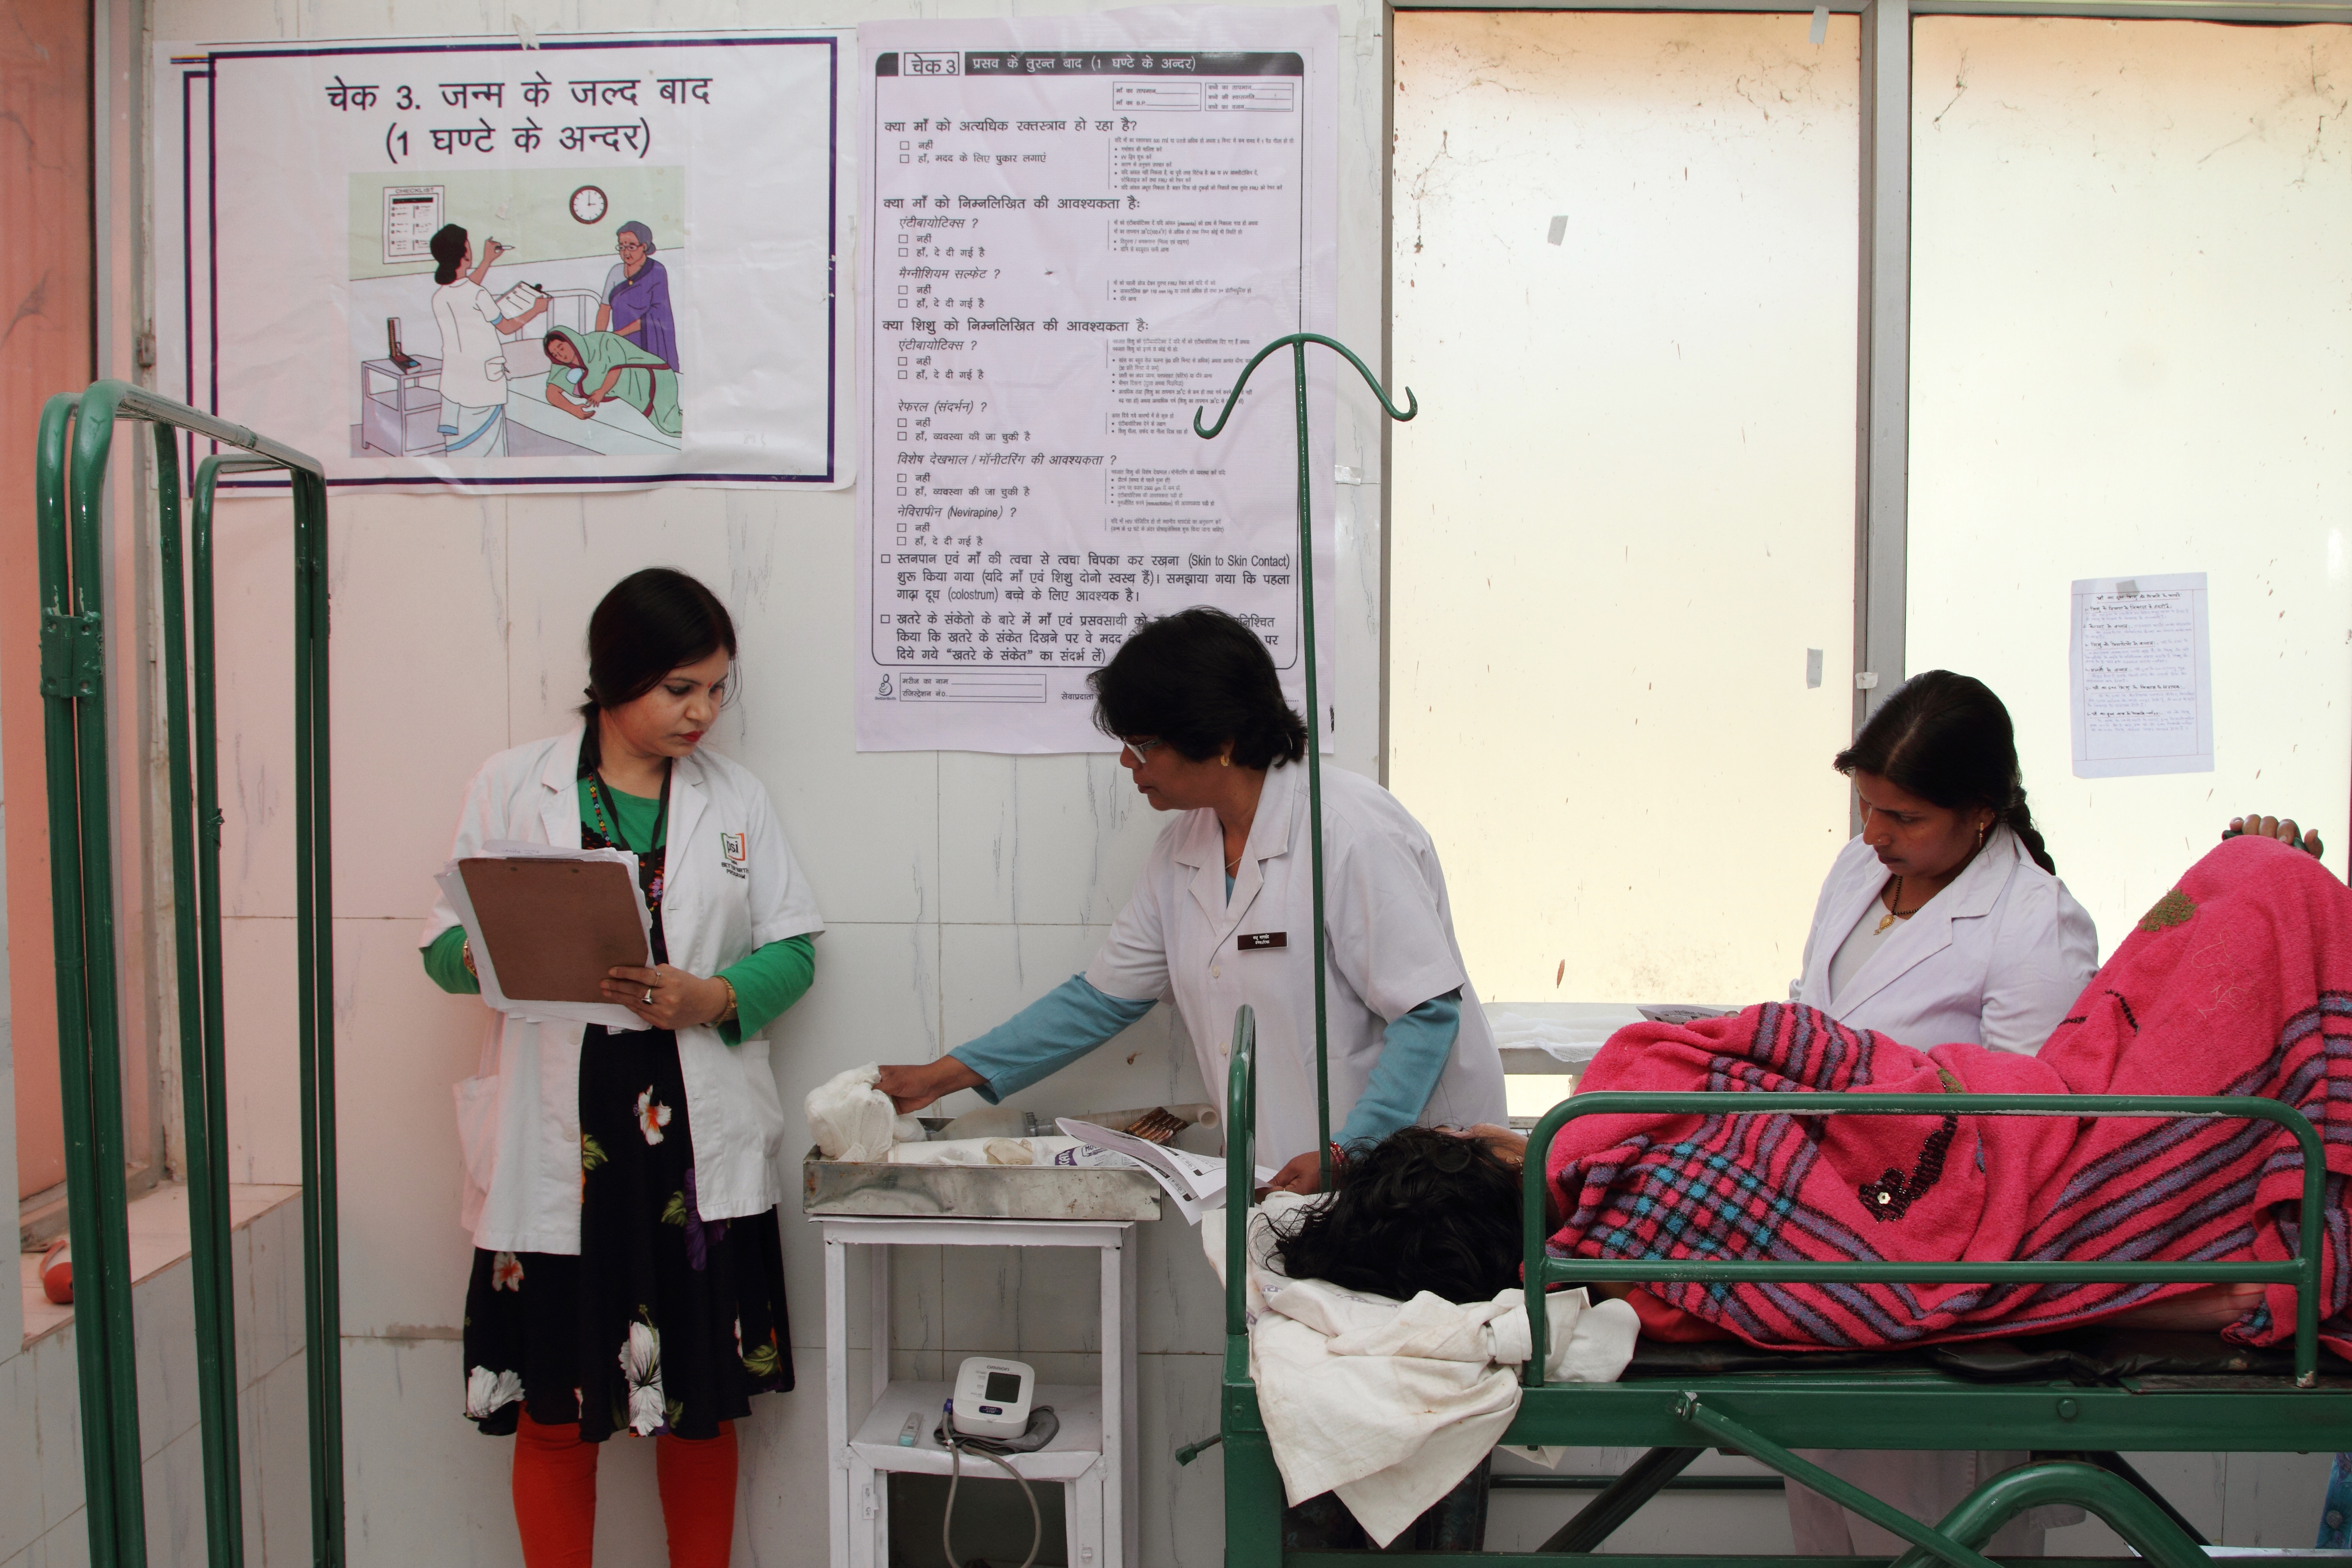 Birth attendants and a BetterBirth coach use the Safe Childbirth Checklist, hanging on the wall, at a facility in Uttar Pradesh to ensure quality care the new mother and baby.